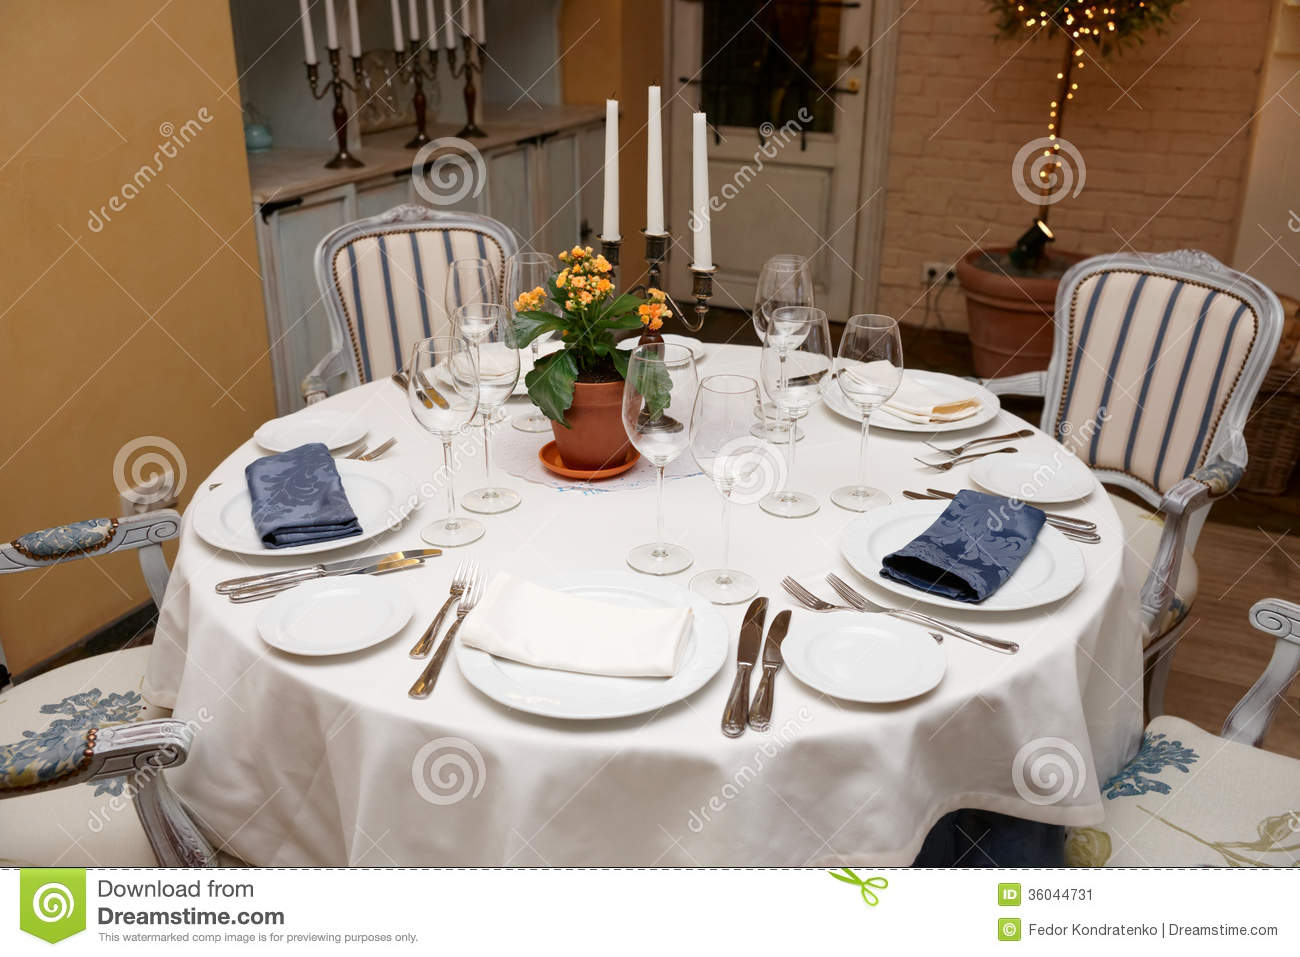 Table setting in a restaurant stock image image of for Restaurant table menu